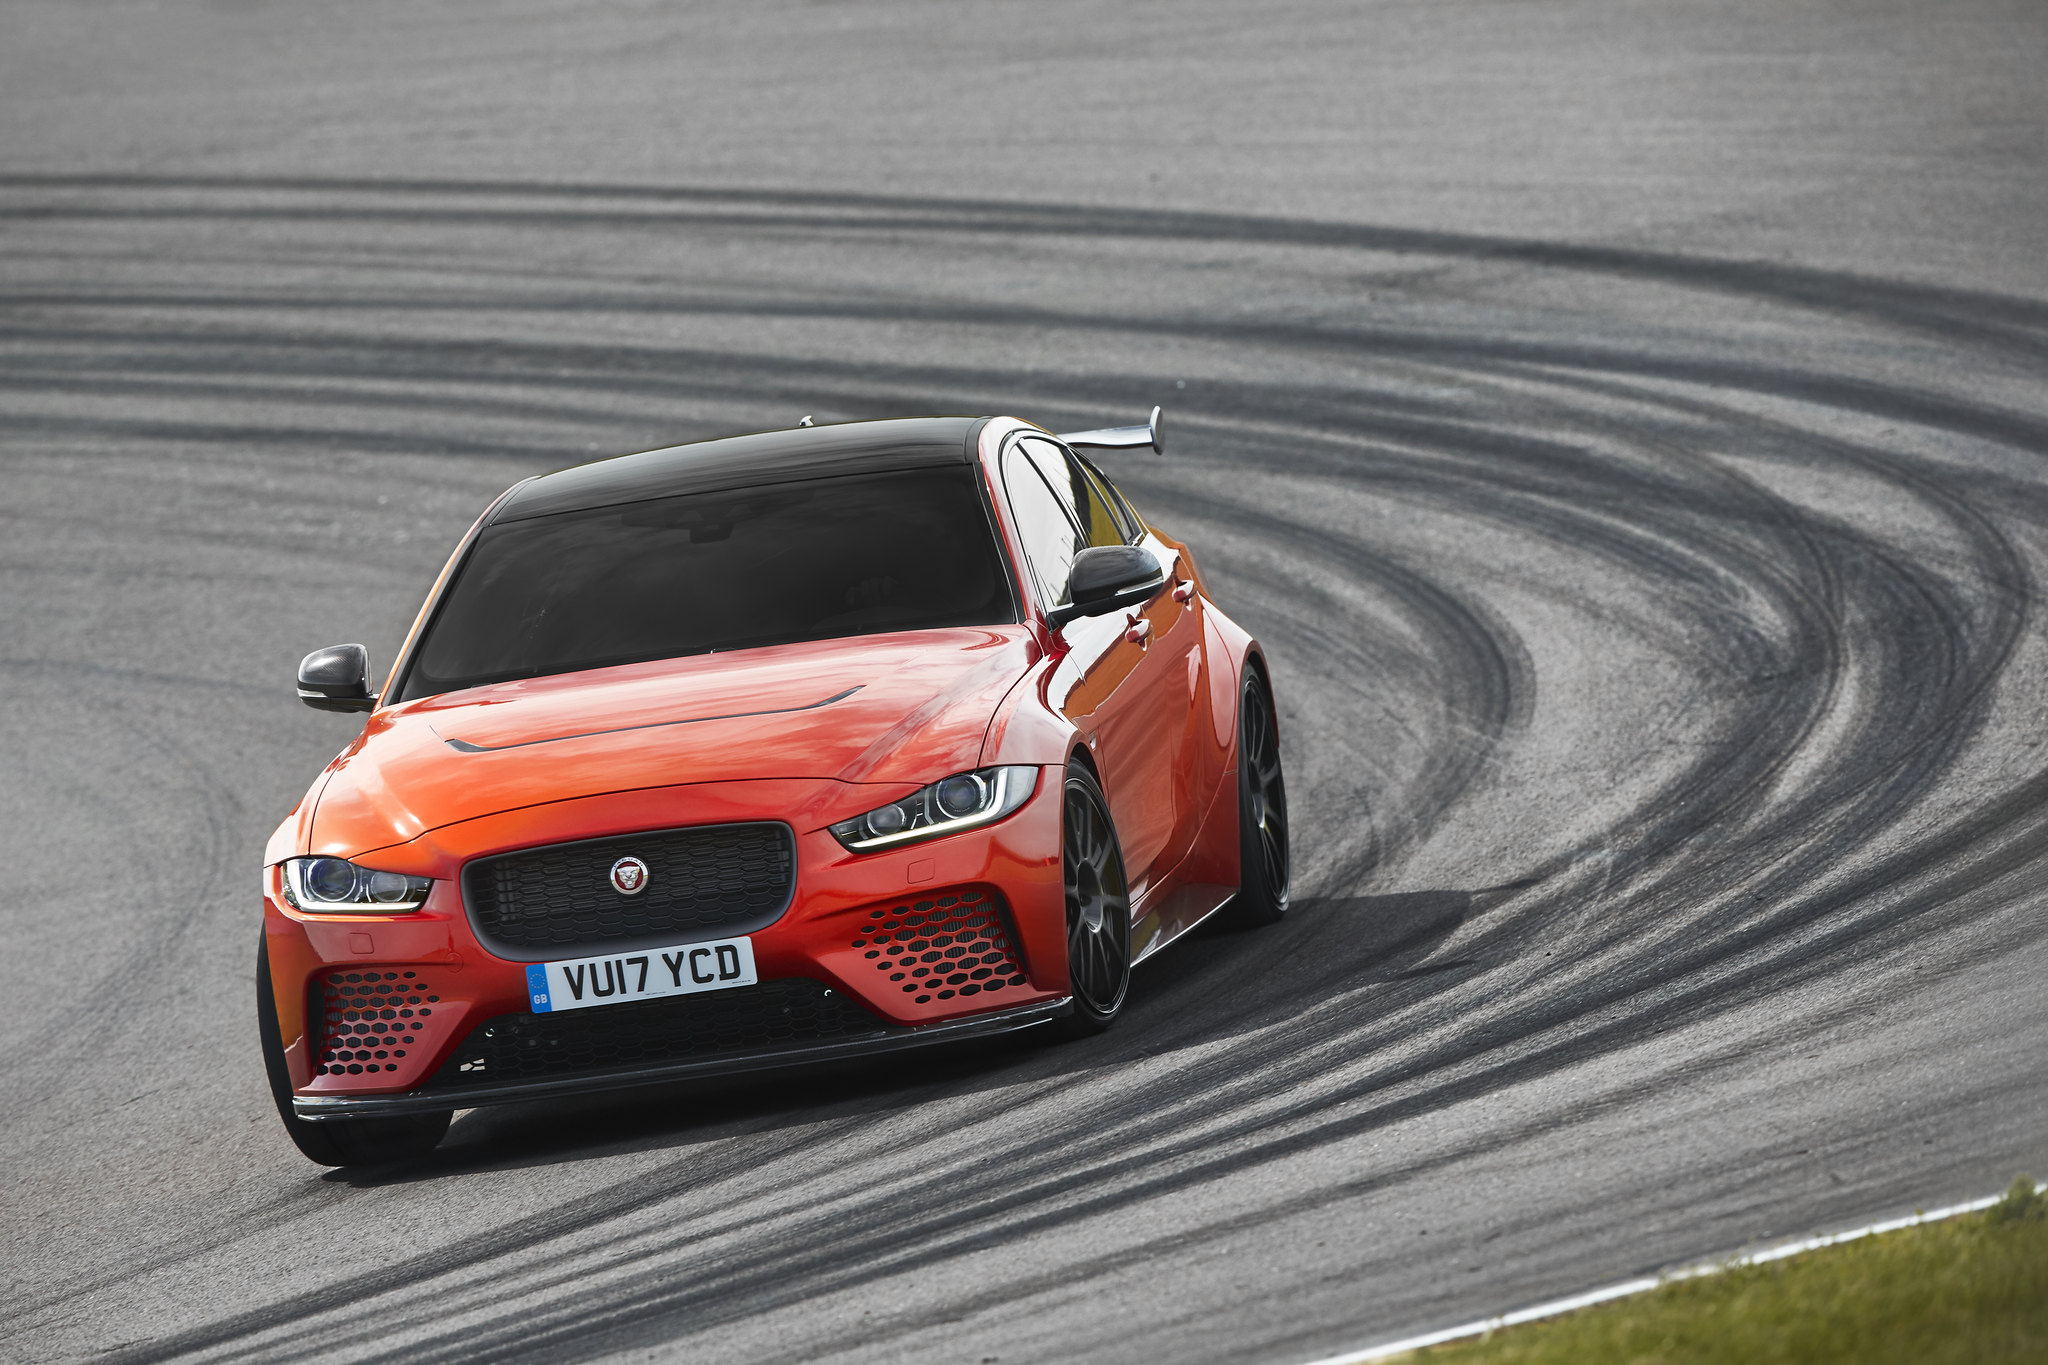 This is the new Jaguar XE SV Project 8